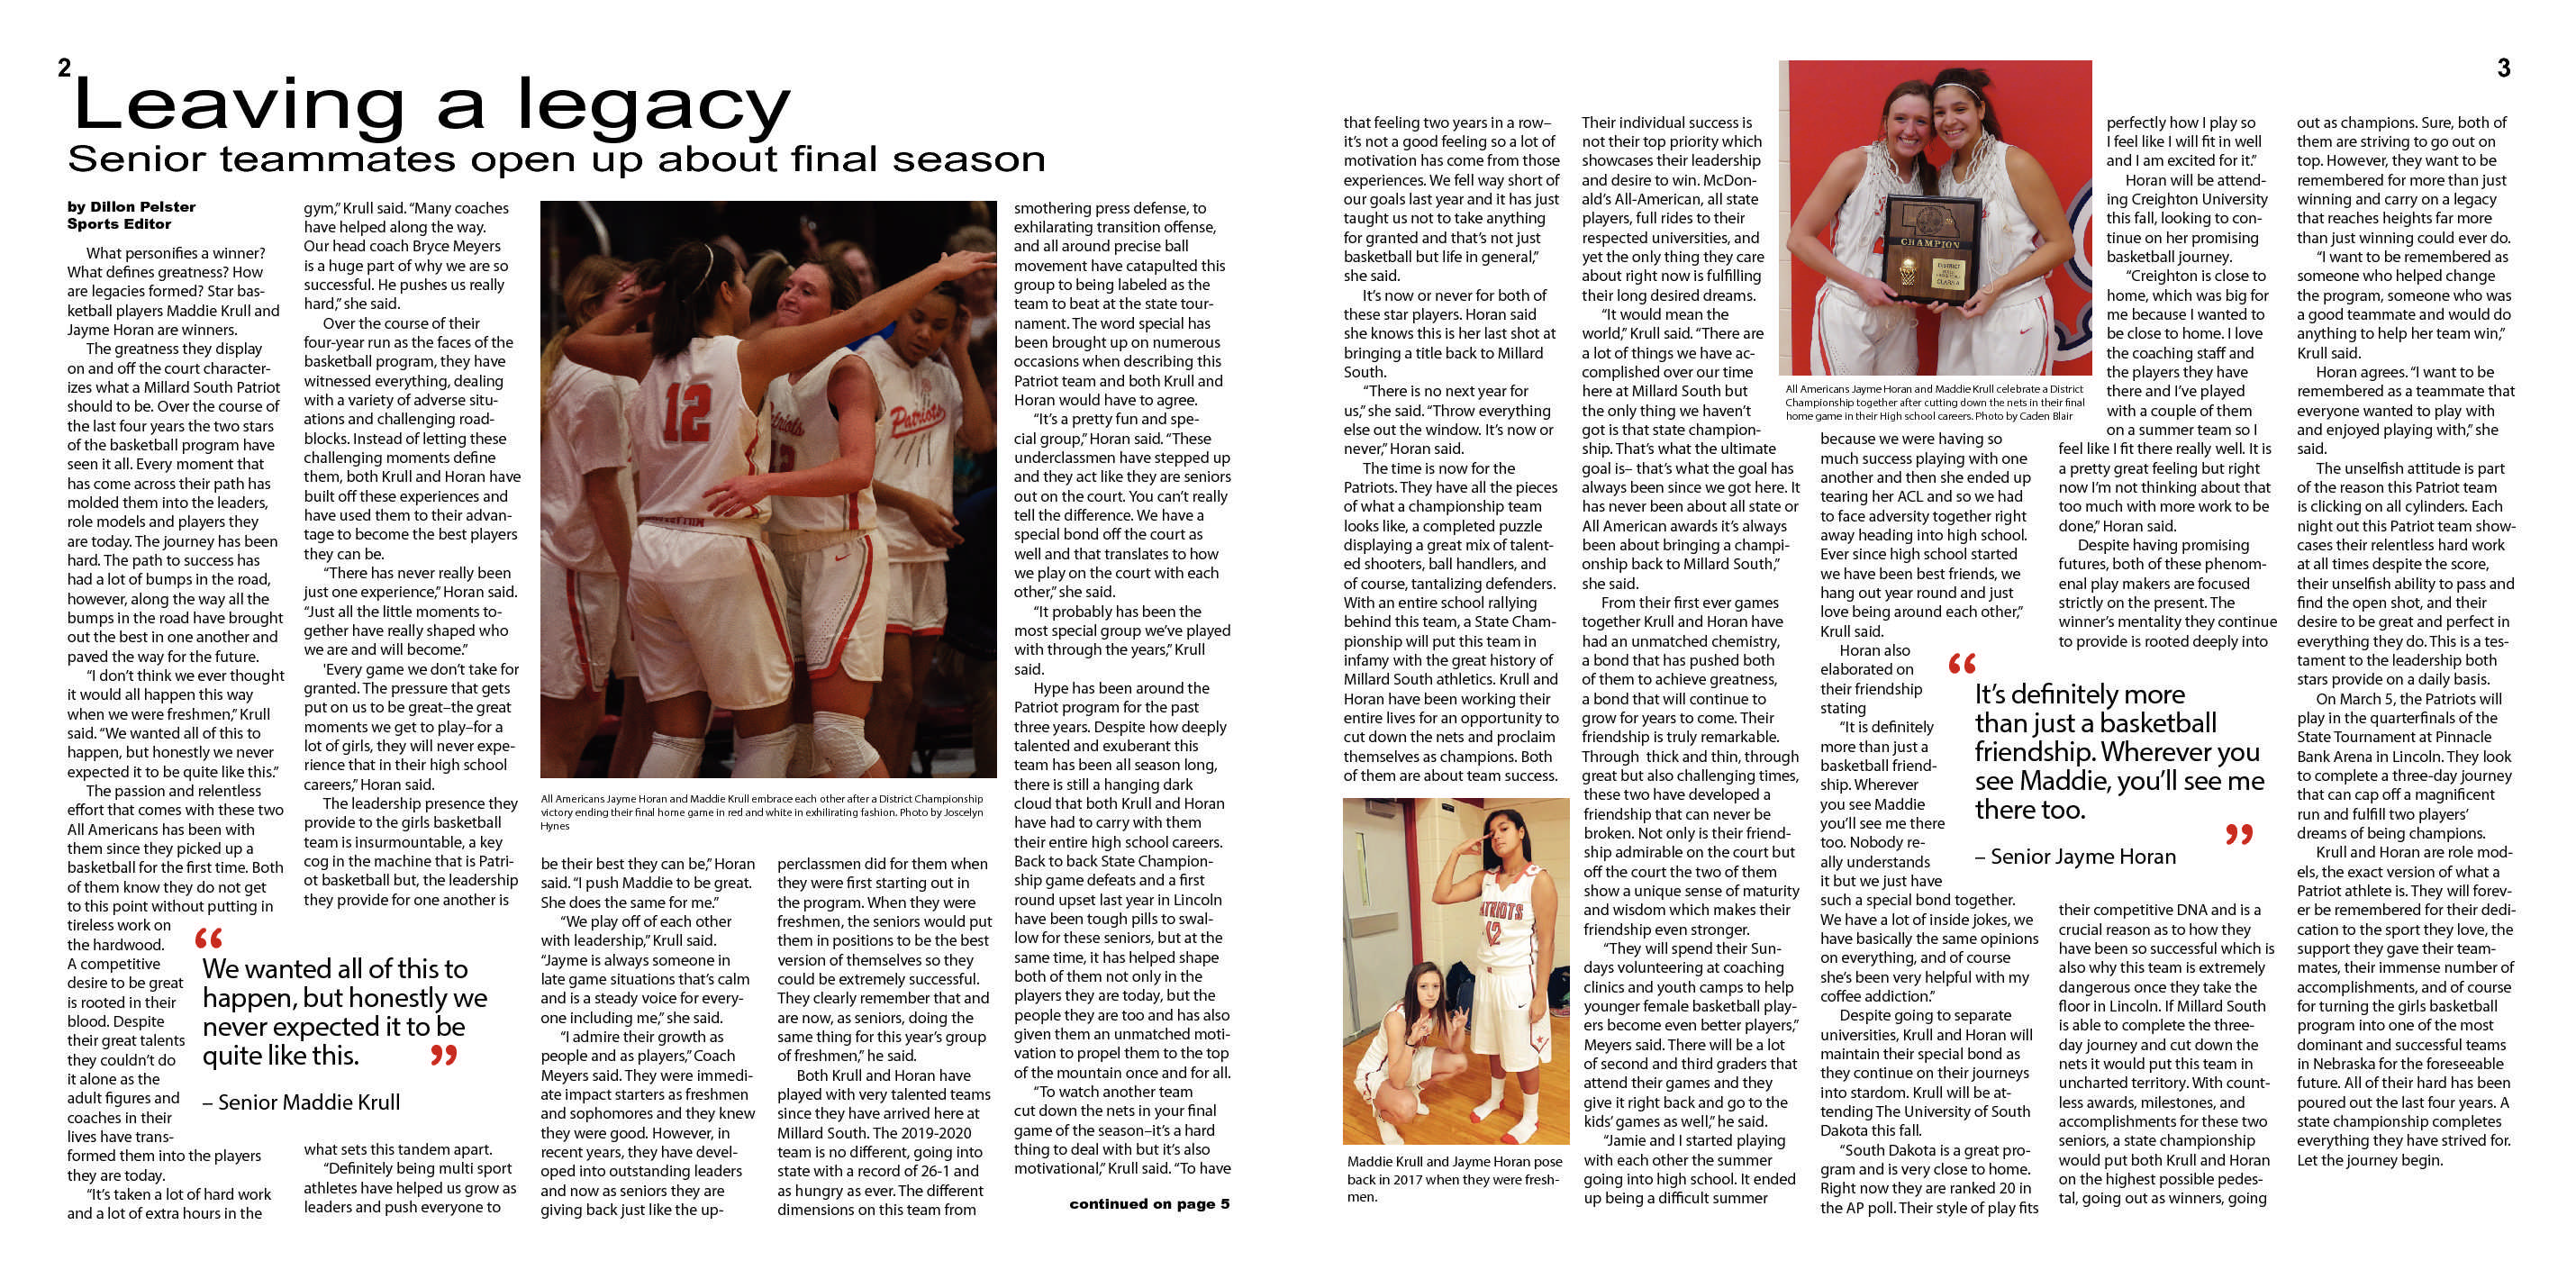 Special Girls Basketball Issue p2-3